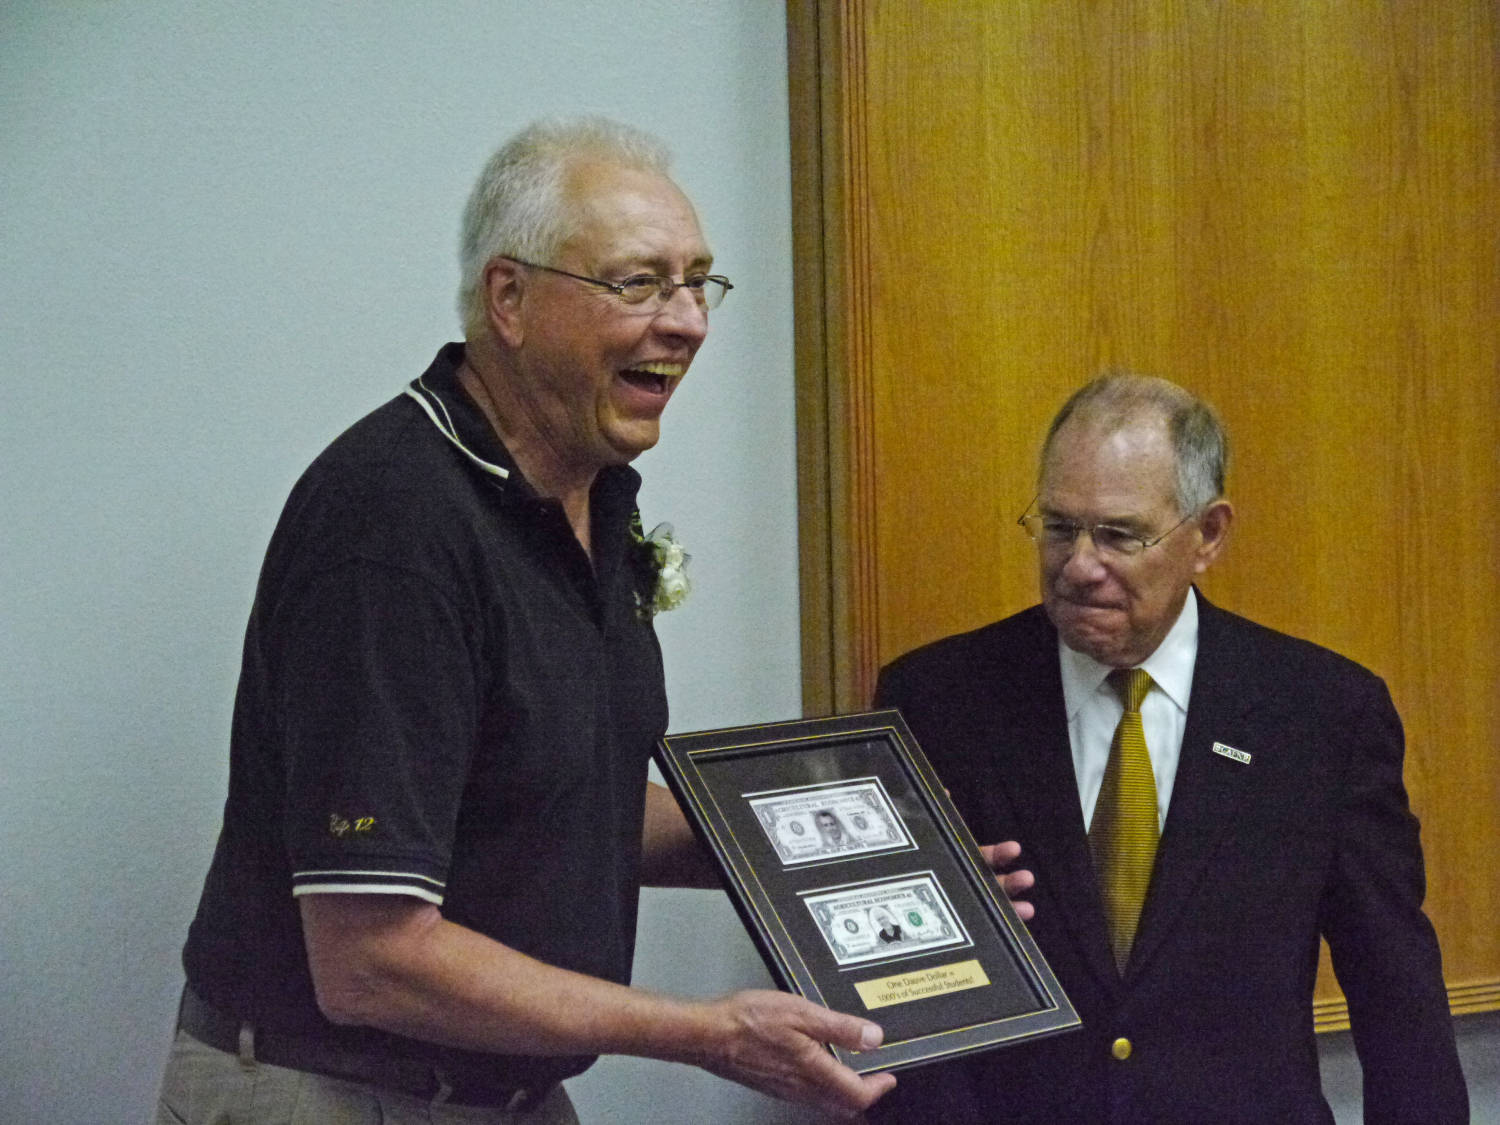 Vice Chancellor and CAFNR Dean Tom Payne presents Dauve with a framed Dauve dollar from his courses, and an updated one with a newer portrait.